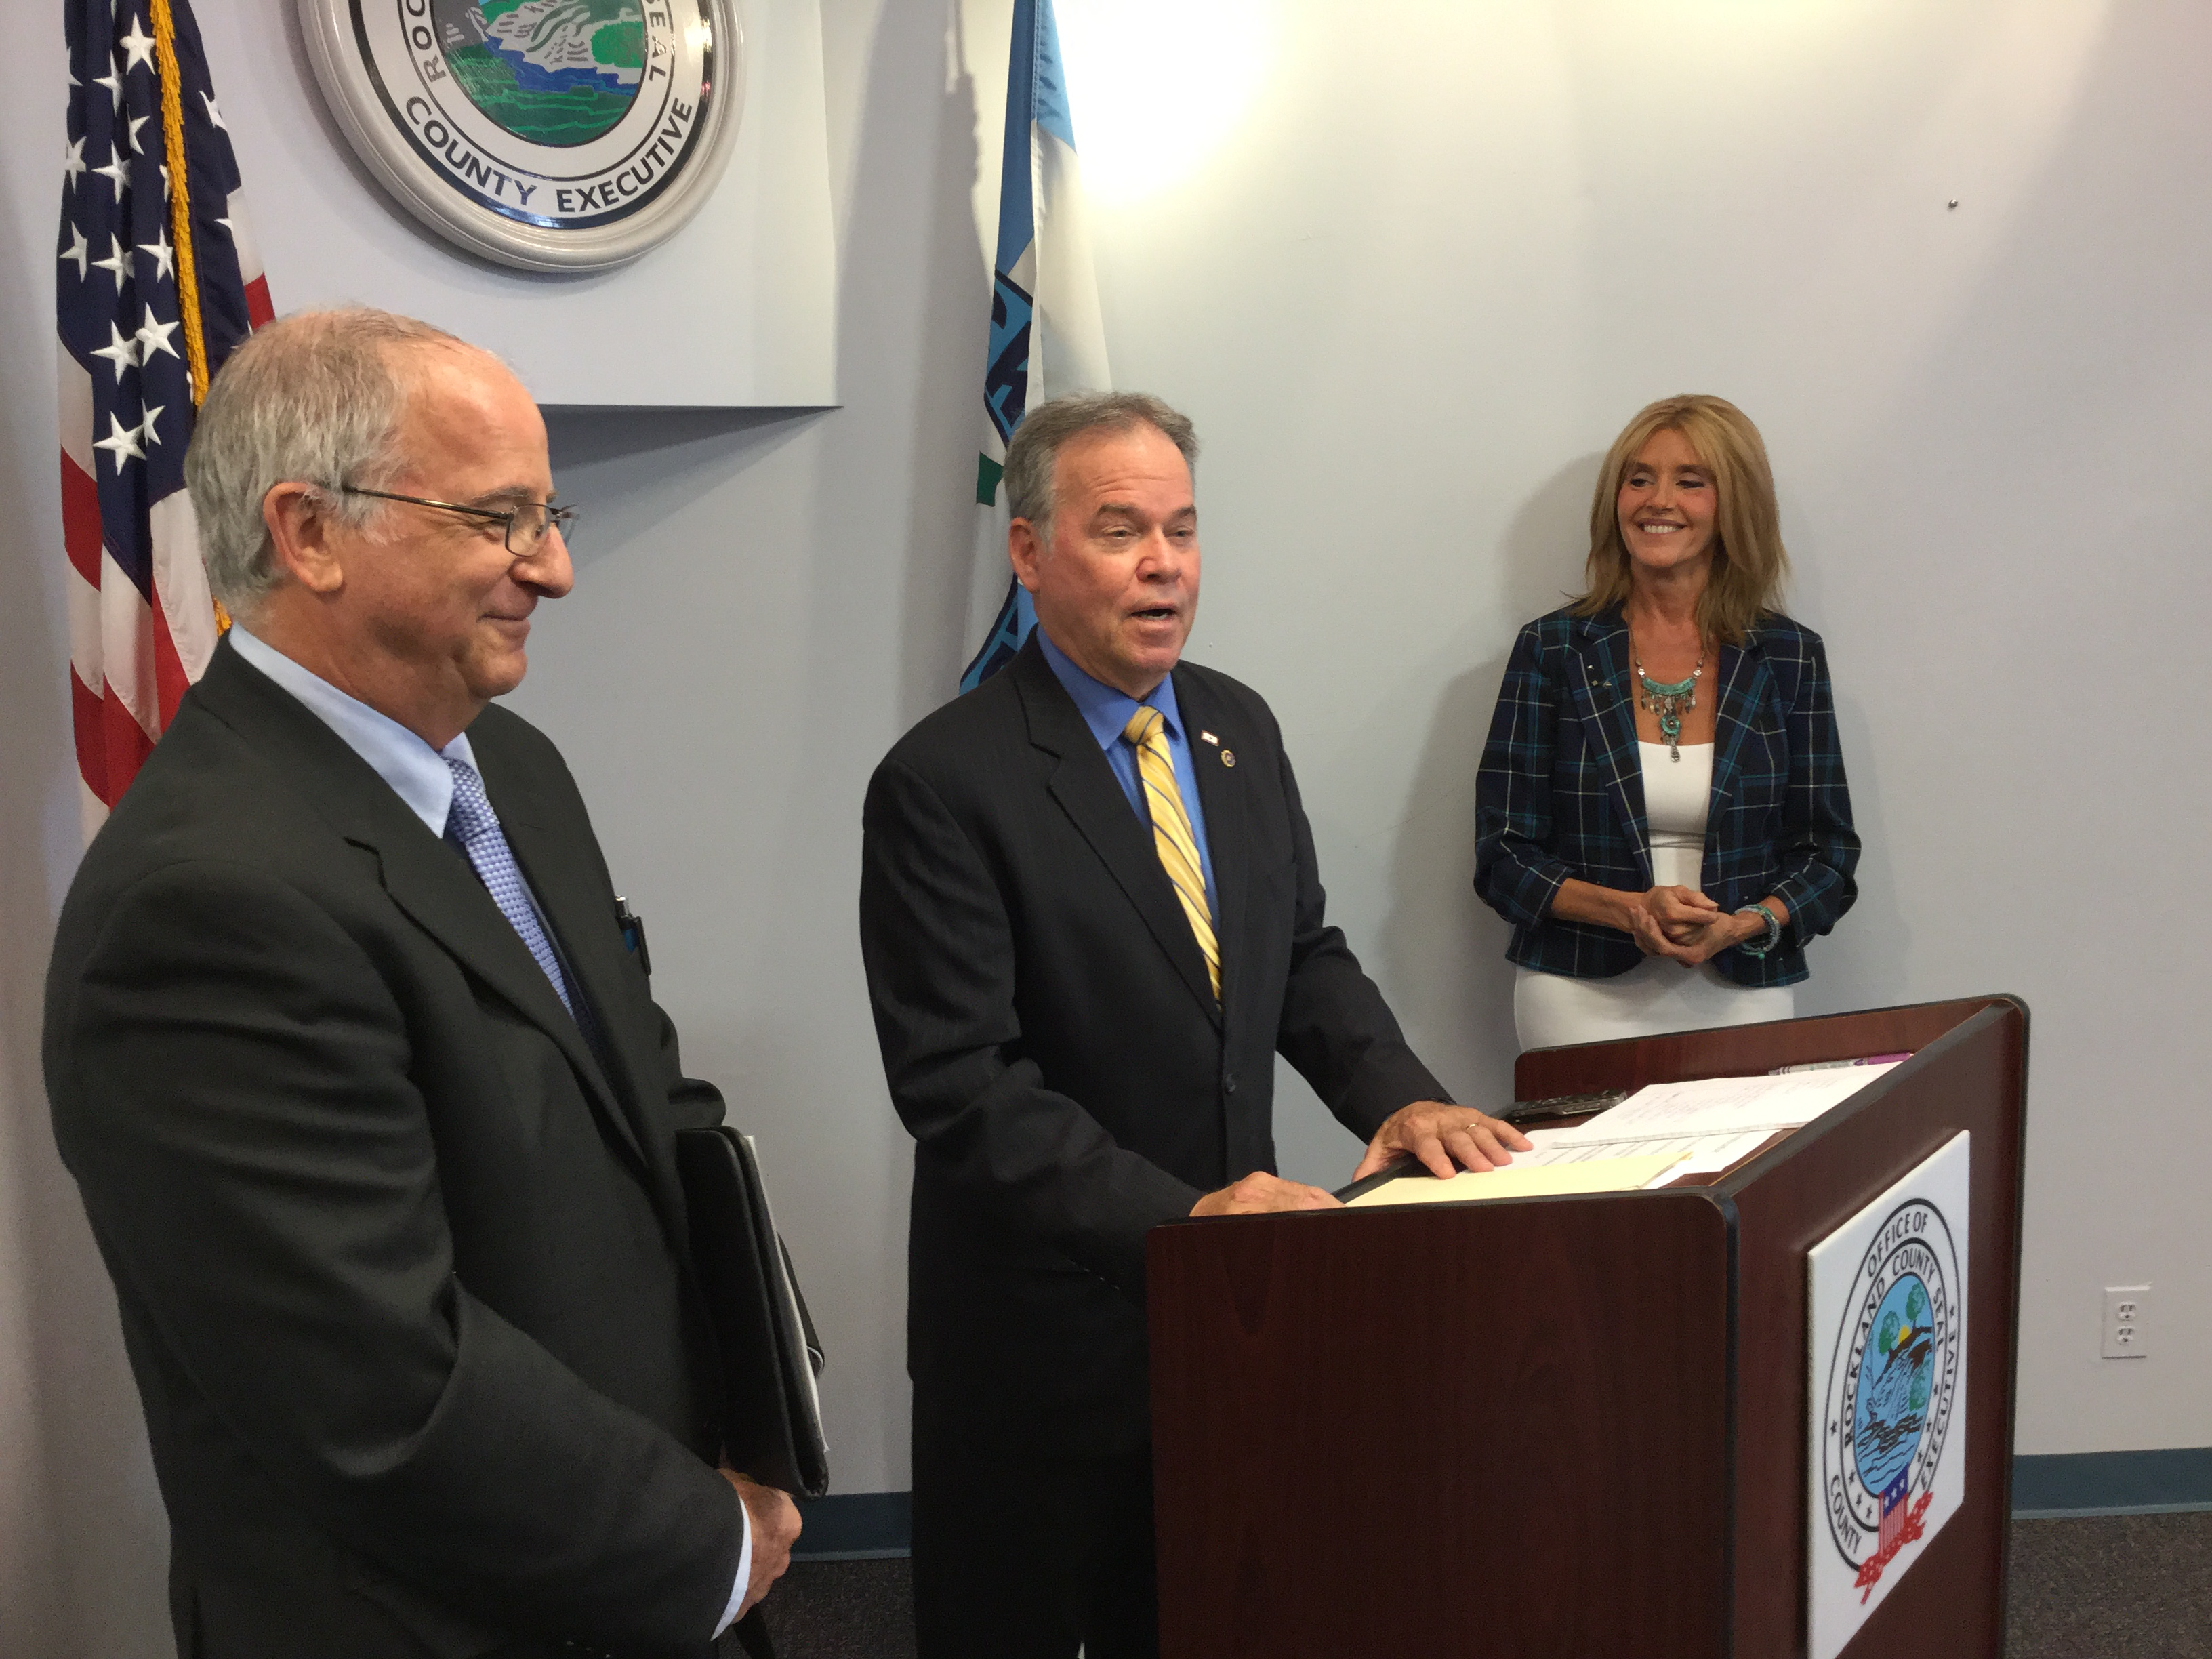 Final Report: County Executive's Commission on Community Behavioral Health